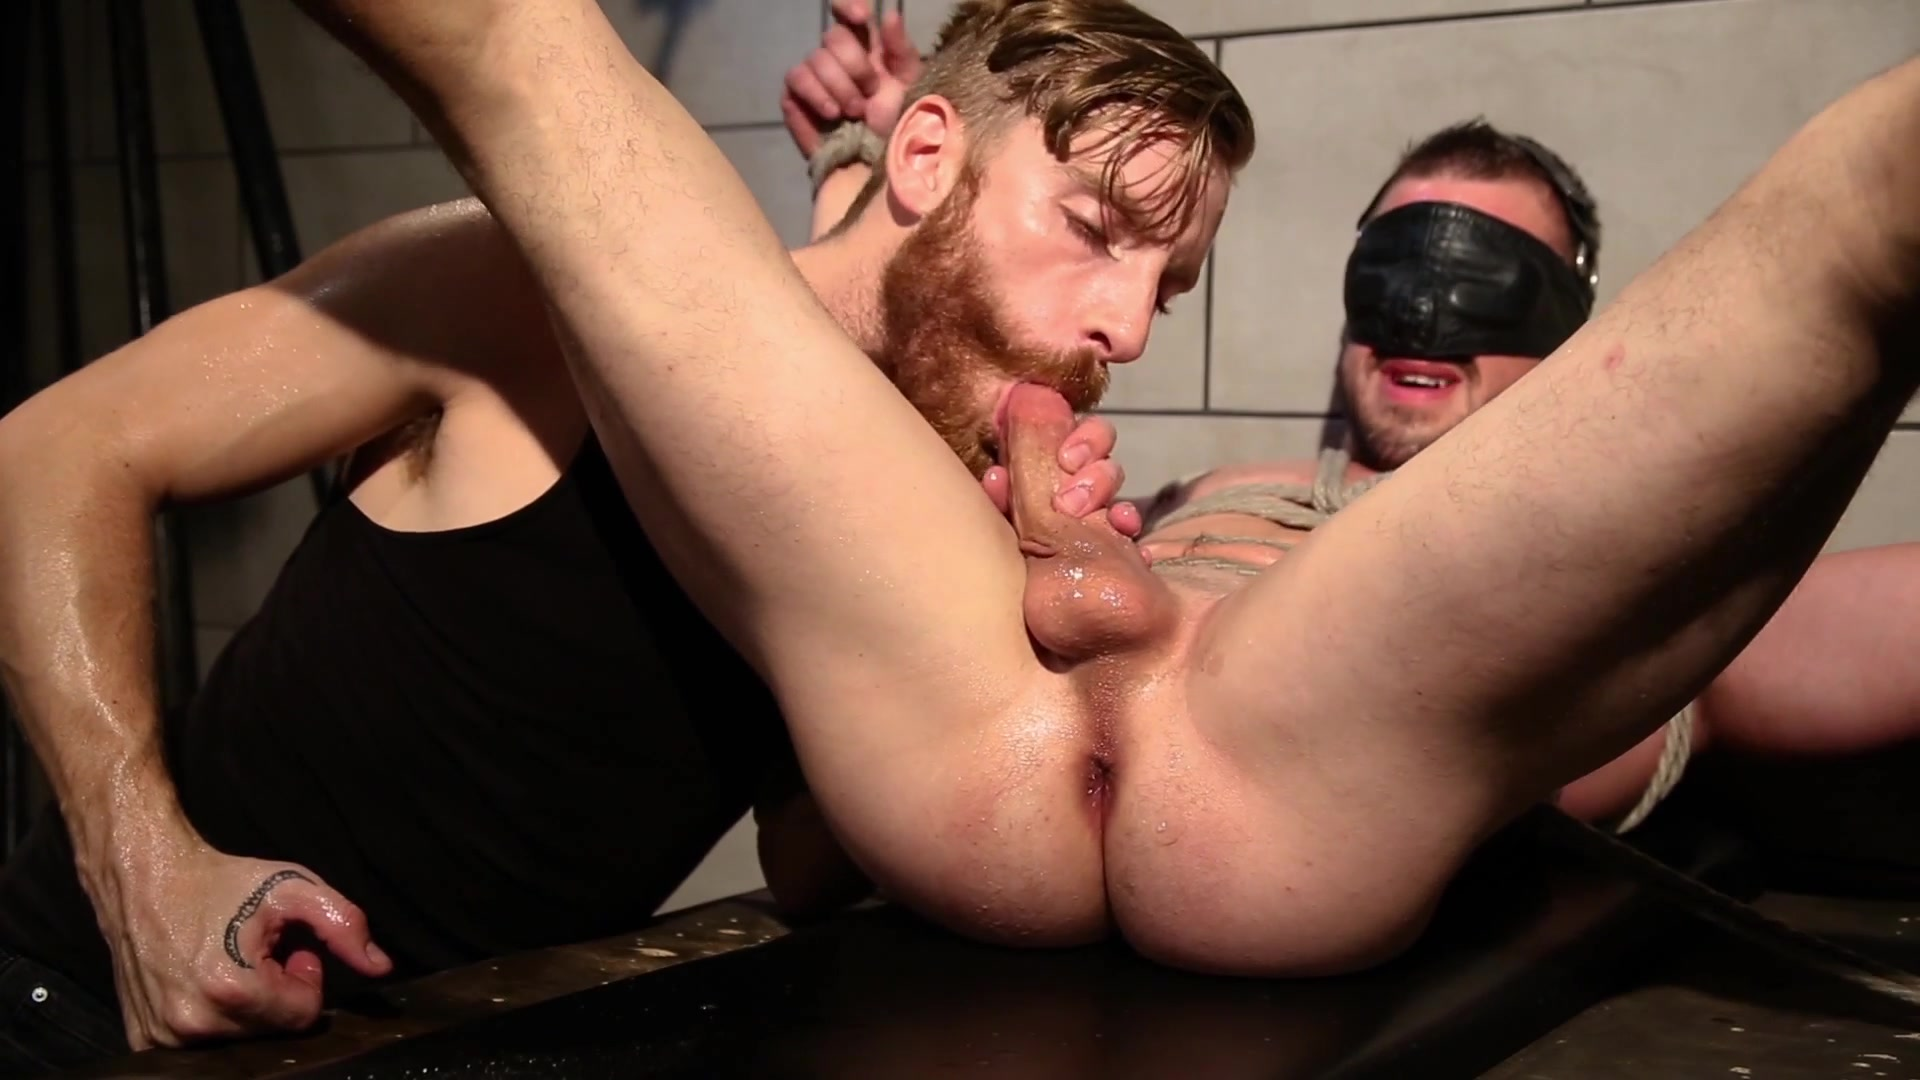 Gay male playing doctor fetish xxx slave boy fed hard inches